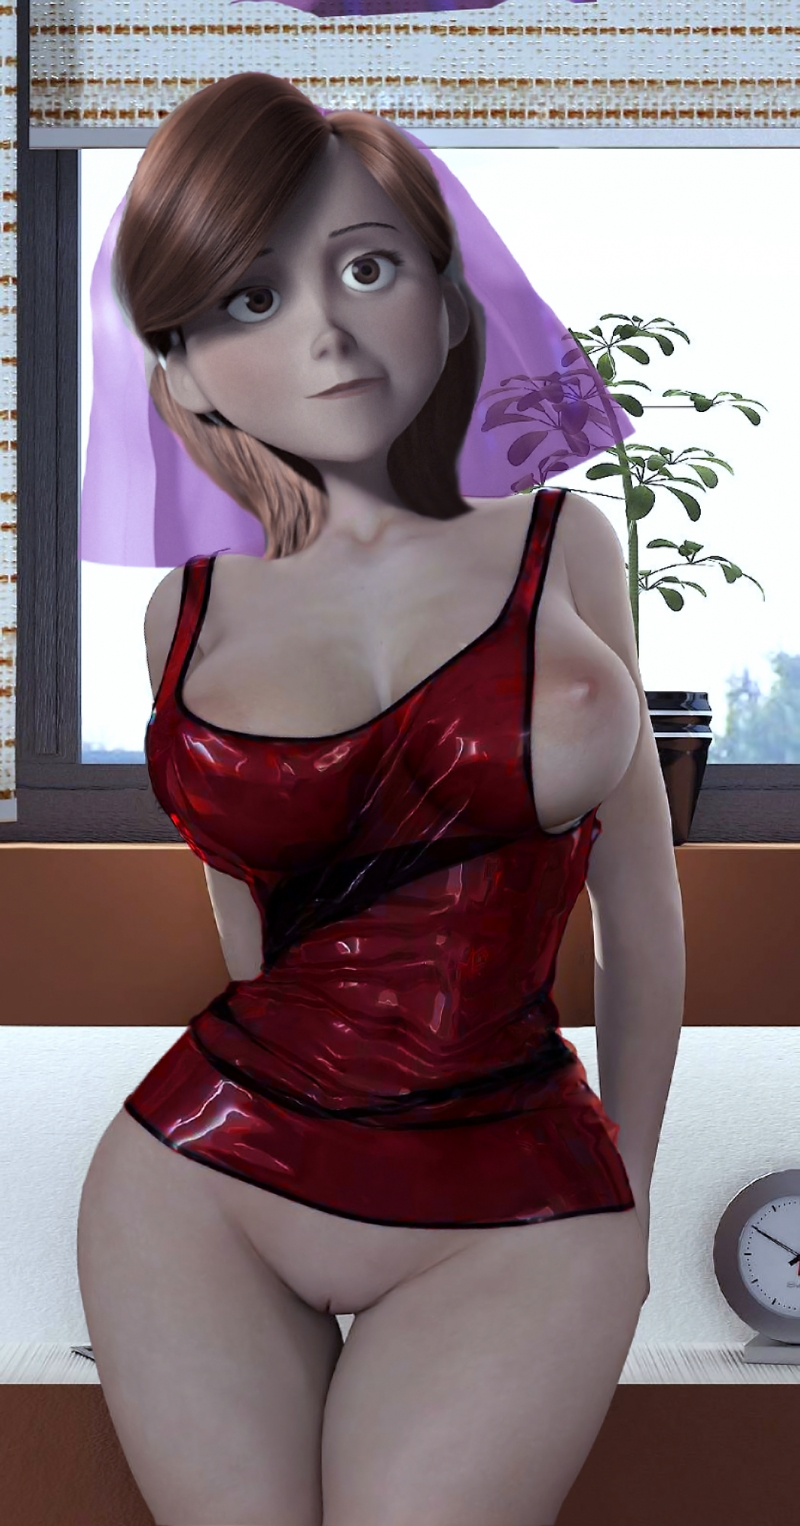 Helen Mirage Violet 753412 - Helen_Parr The_Incredibles.jpg